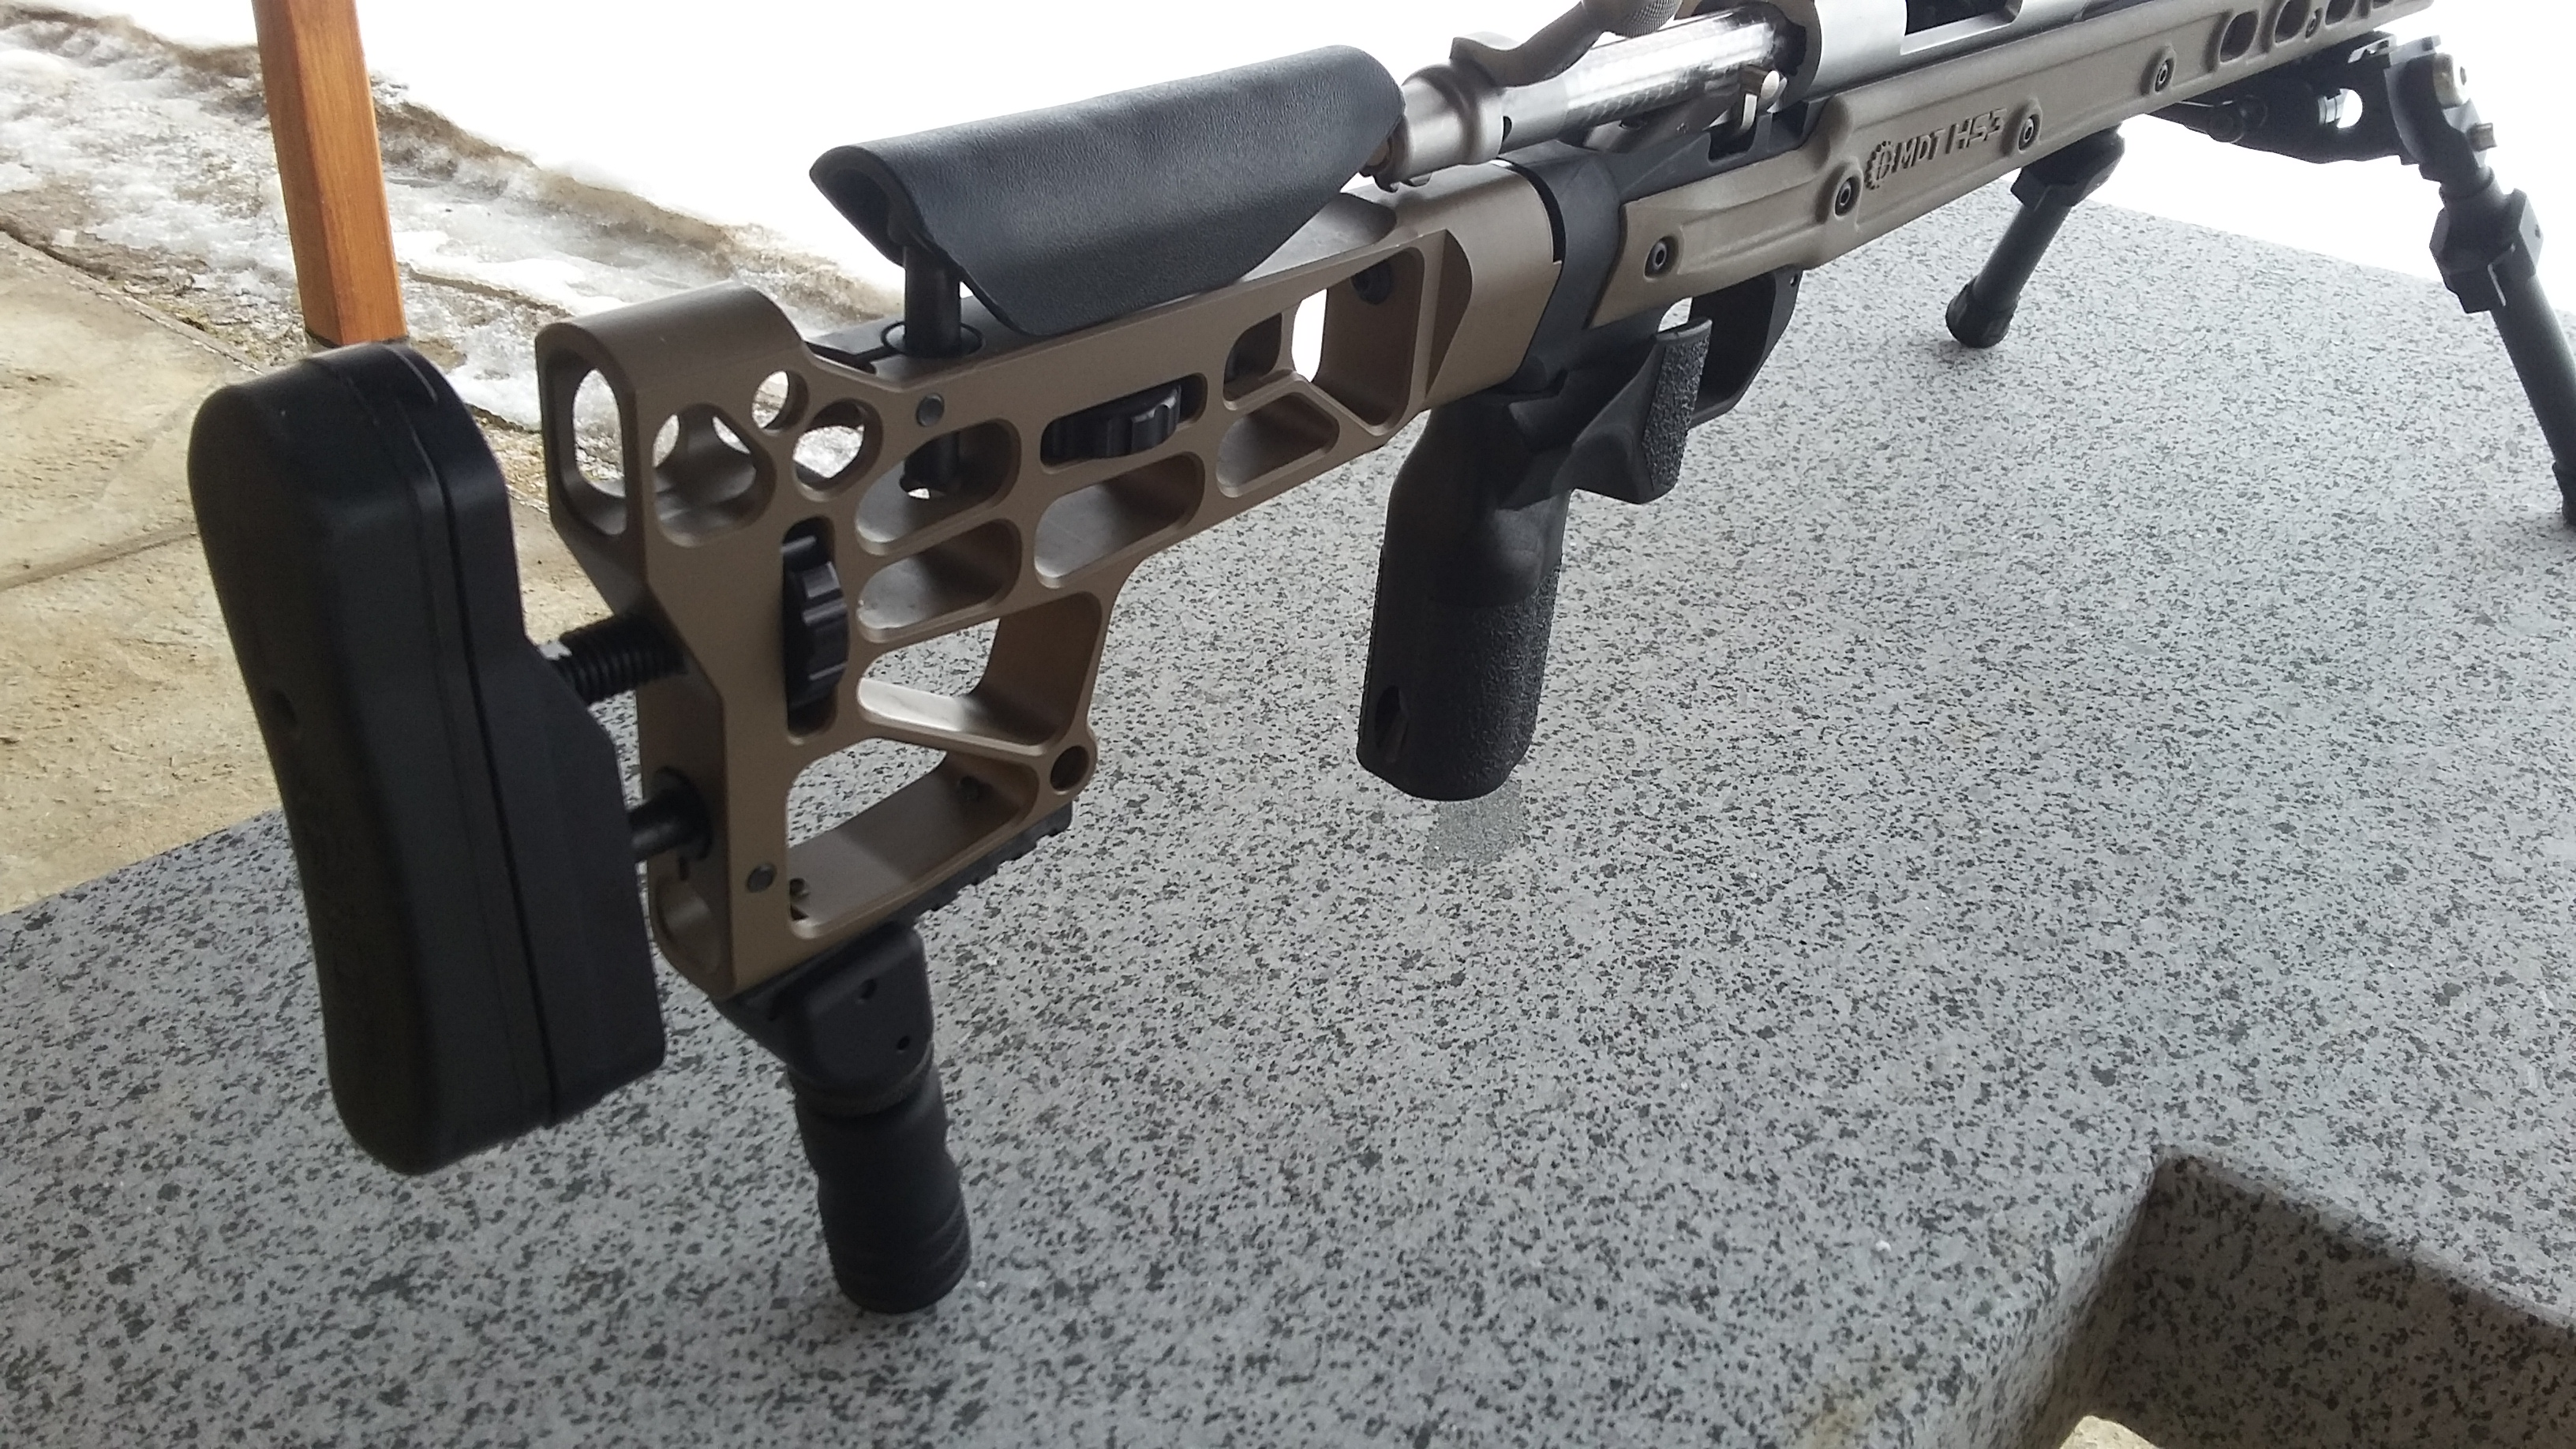 Remington 700 SPS with MDT (Modular Driven Technologies) HS3 LA Stock Chassis